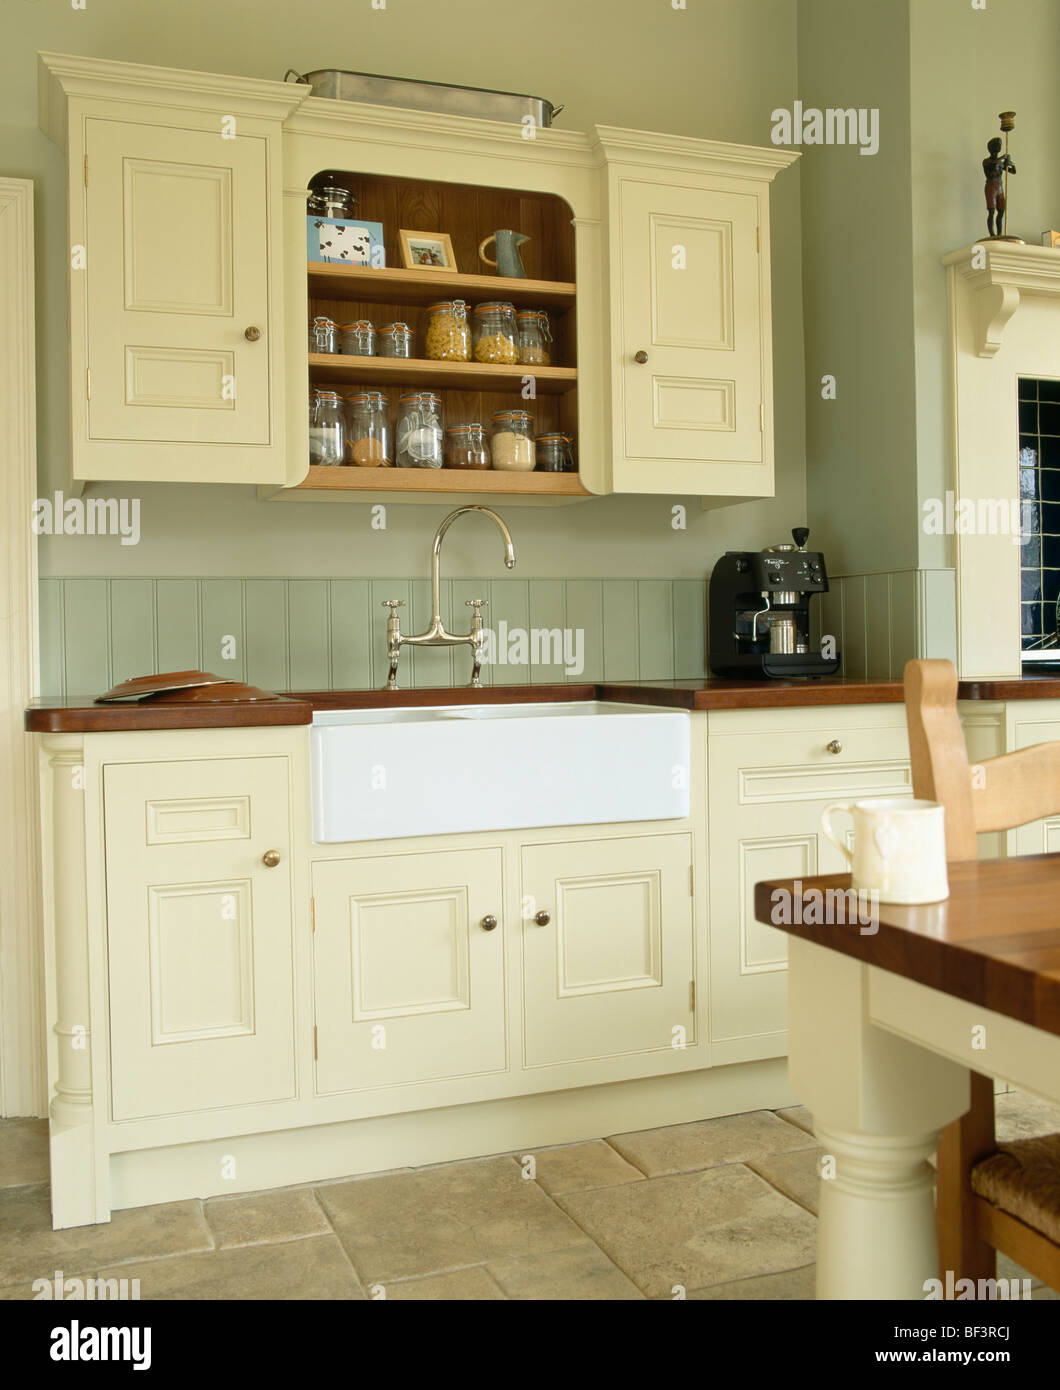 Exceptionnel White Belfast Sink In Cream Fitted Unit Below Fitted Wall Cupboard In  Traditional Country Kitchen Painted In Farrow+Ball Paint